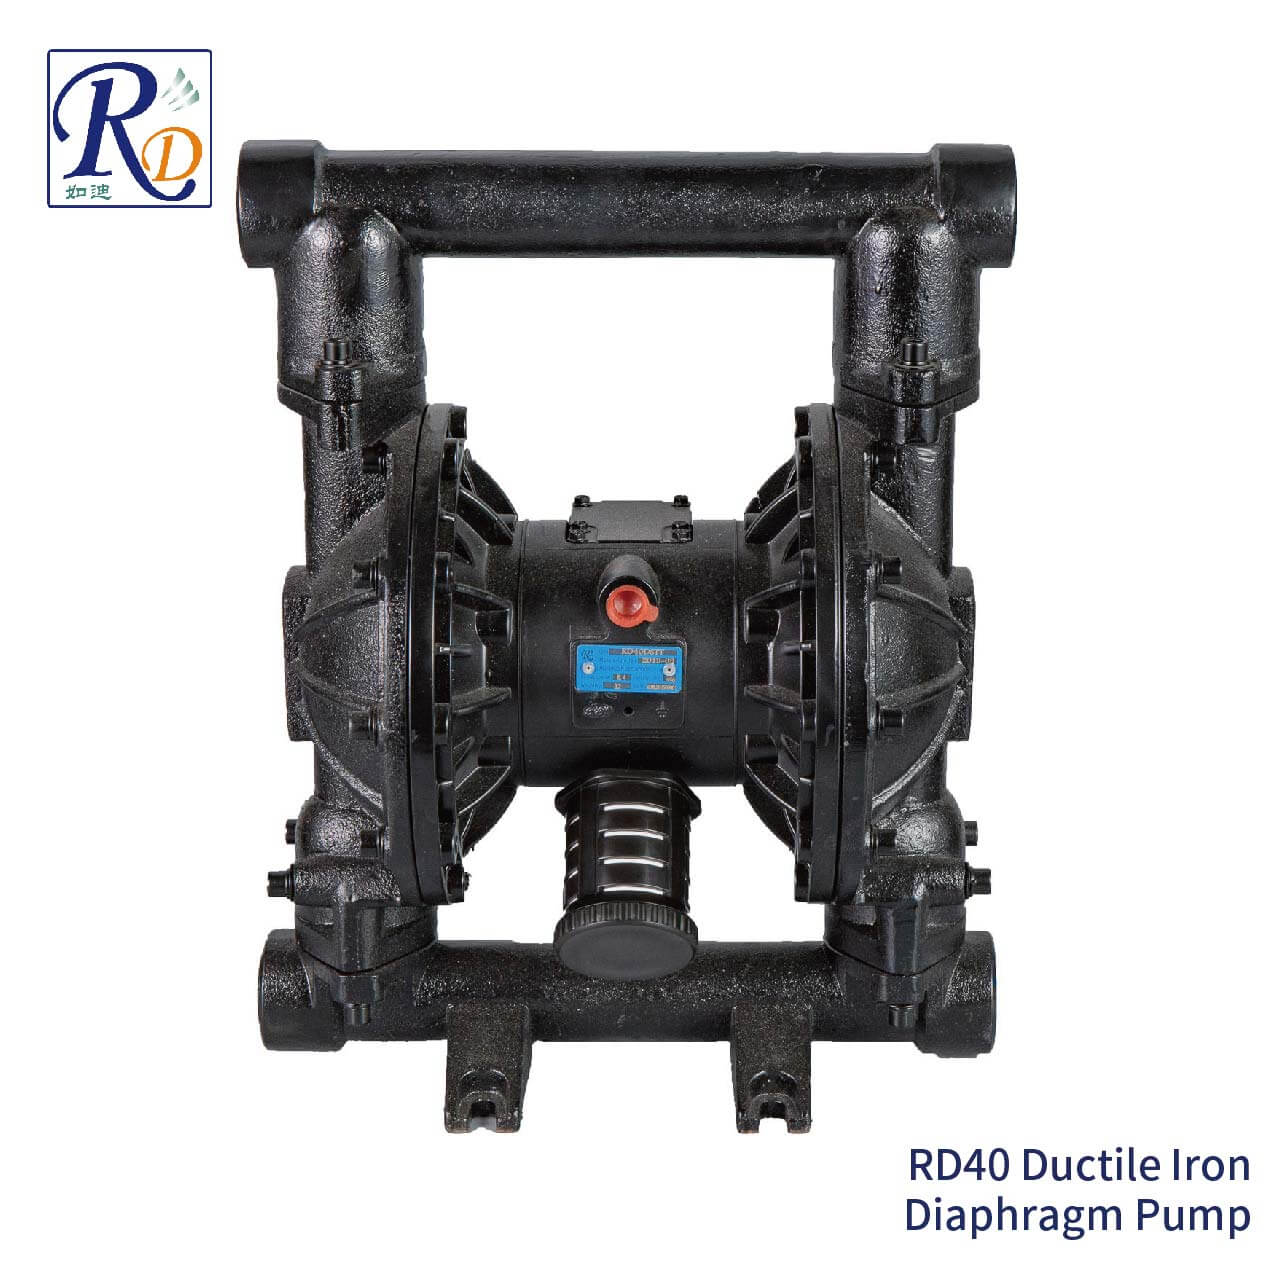 RD40 Ductile Iron Diaphragm Pump